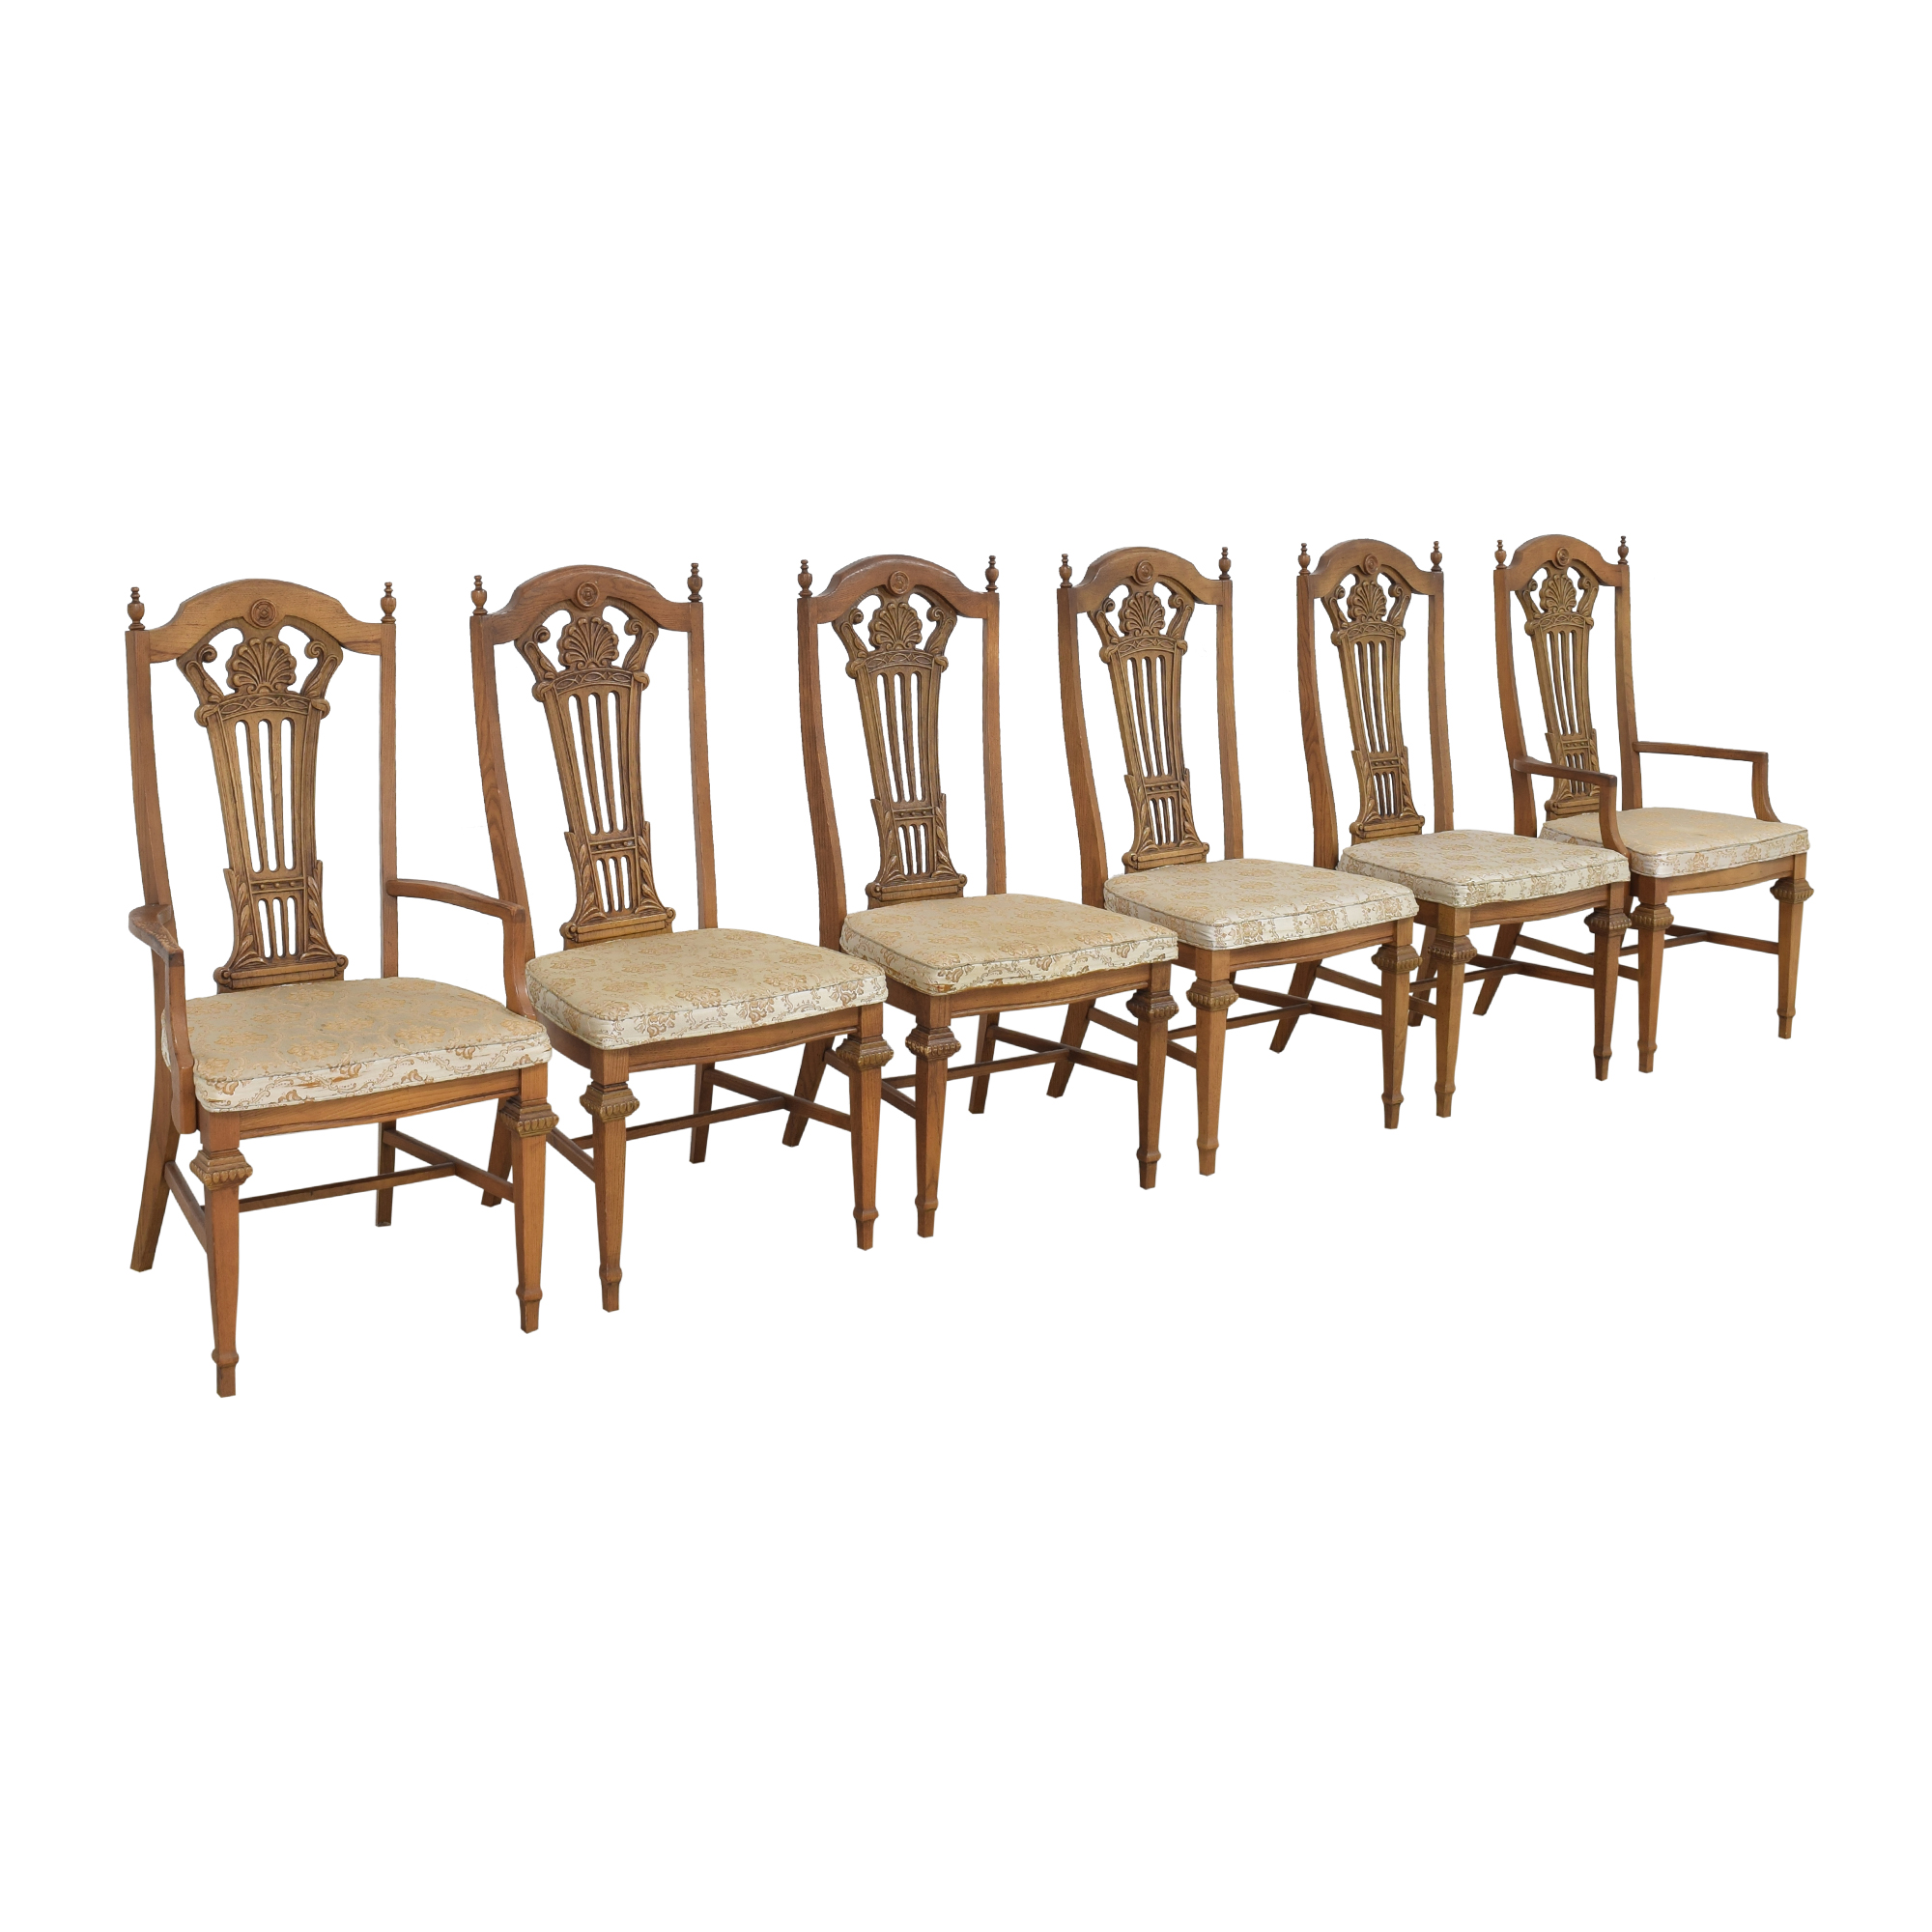 Bassett Furniture Bassett Chair Carved Dining Chairs price